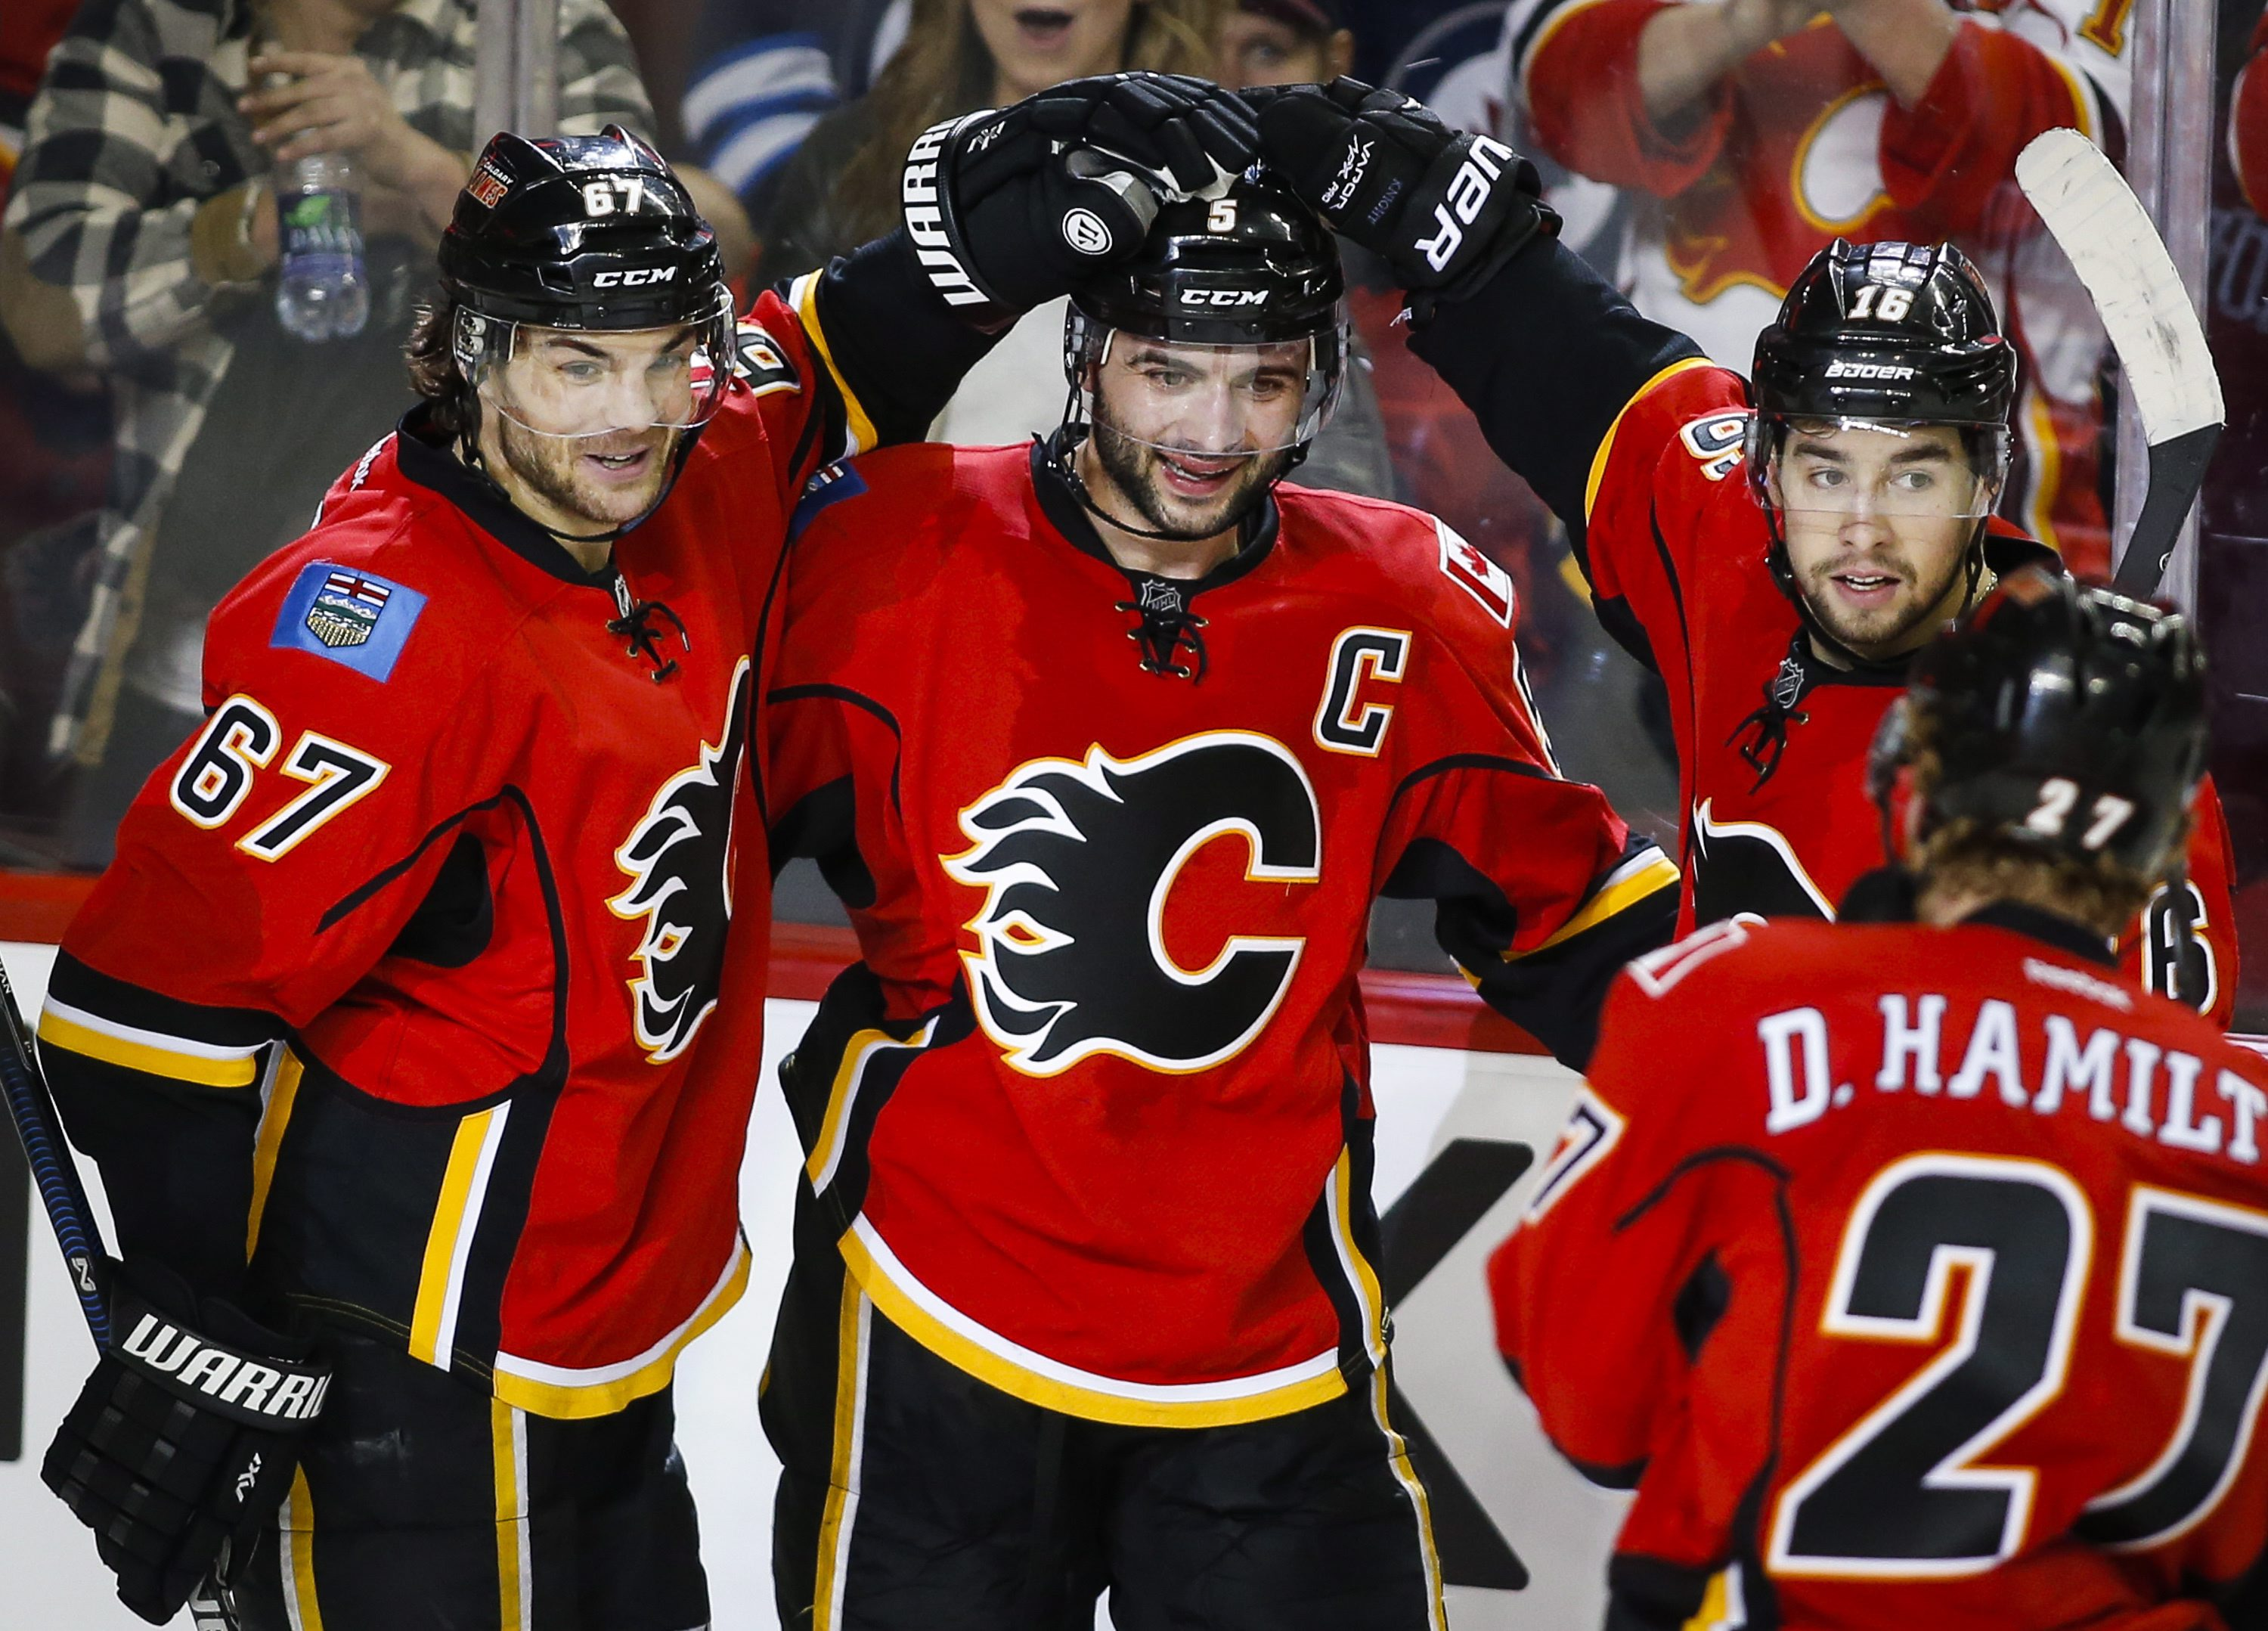 Calgary Flames' Mark Giordano, center, celebrates his goal with teammates Michael Frolik, left, from the Czech Republic, and Josh Jooris during the third period of an NHL hockey game against the Winnipeg Jets on Wednesday, March 16, 2016, in Calgary, Albe